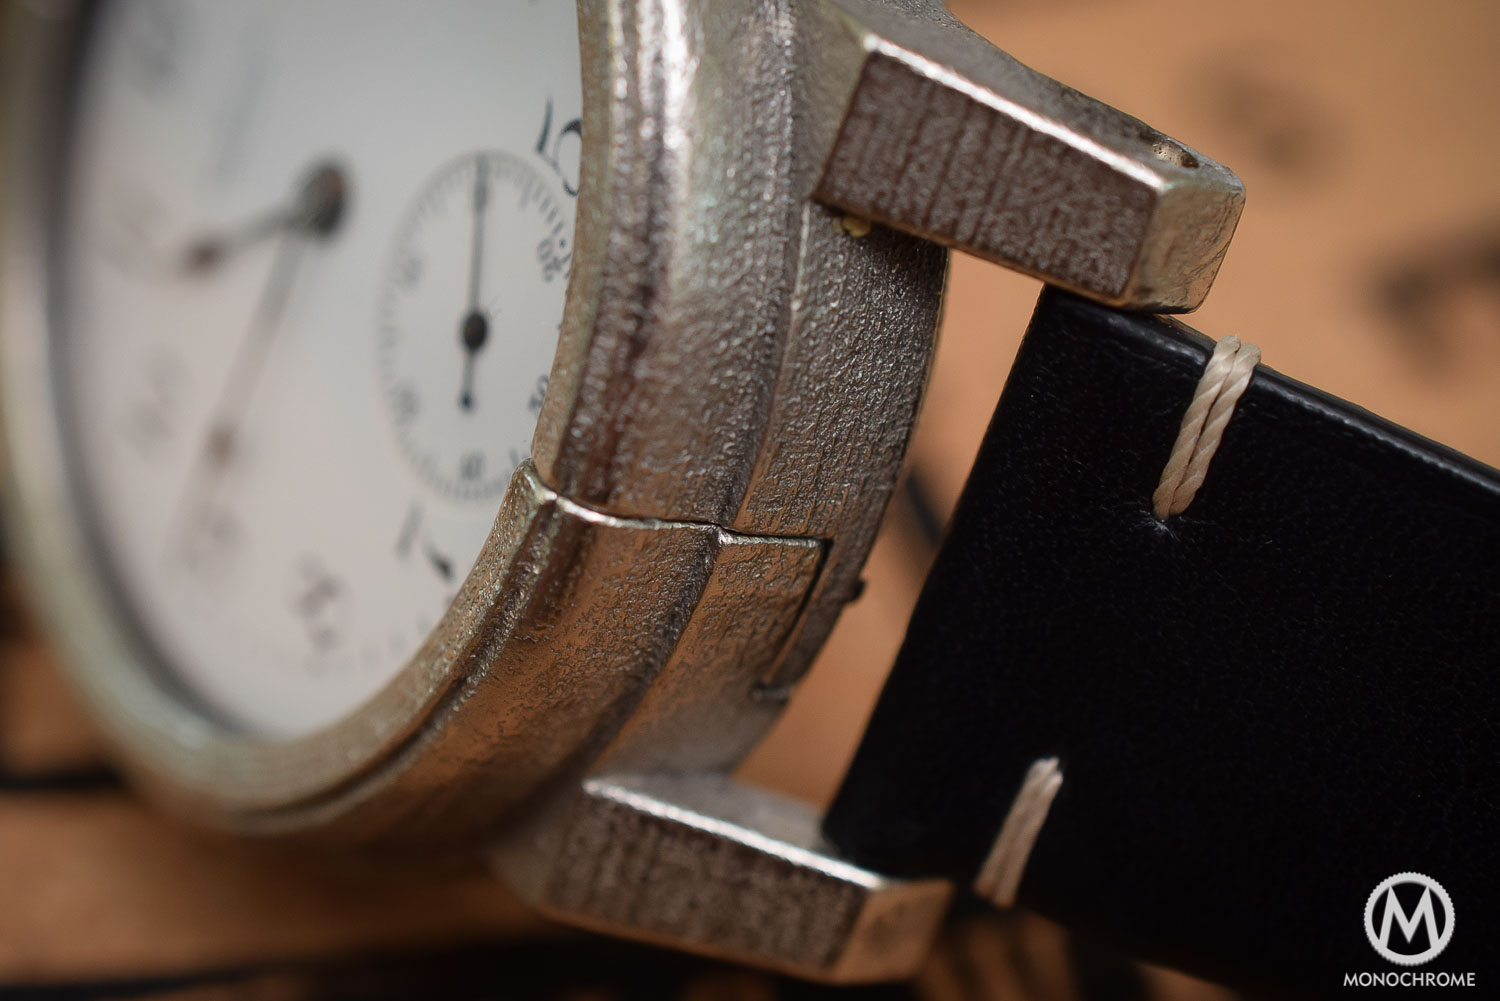 Vortic Watch Co - antique movements and 3D printed cases - 5